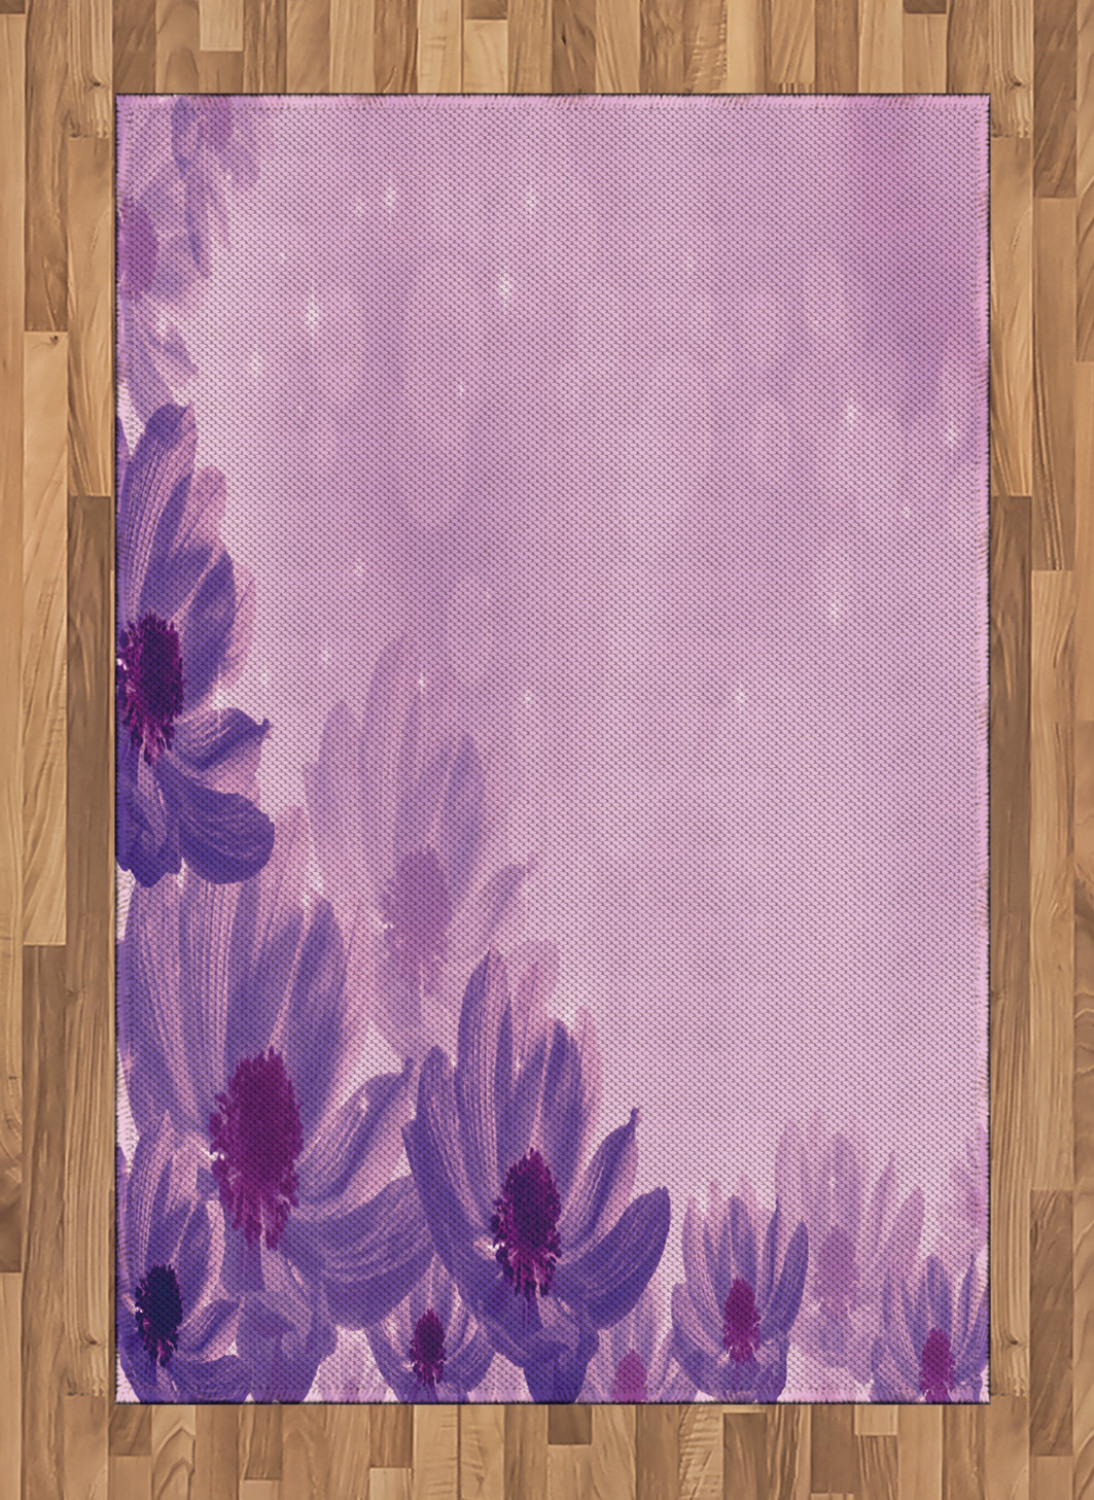 Anemone-Flower-Area-Rug-Decor-Flat-Woven-Accent-Rug-Home-Decor-2-Sizes-Ambesonne thumbnail 15